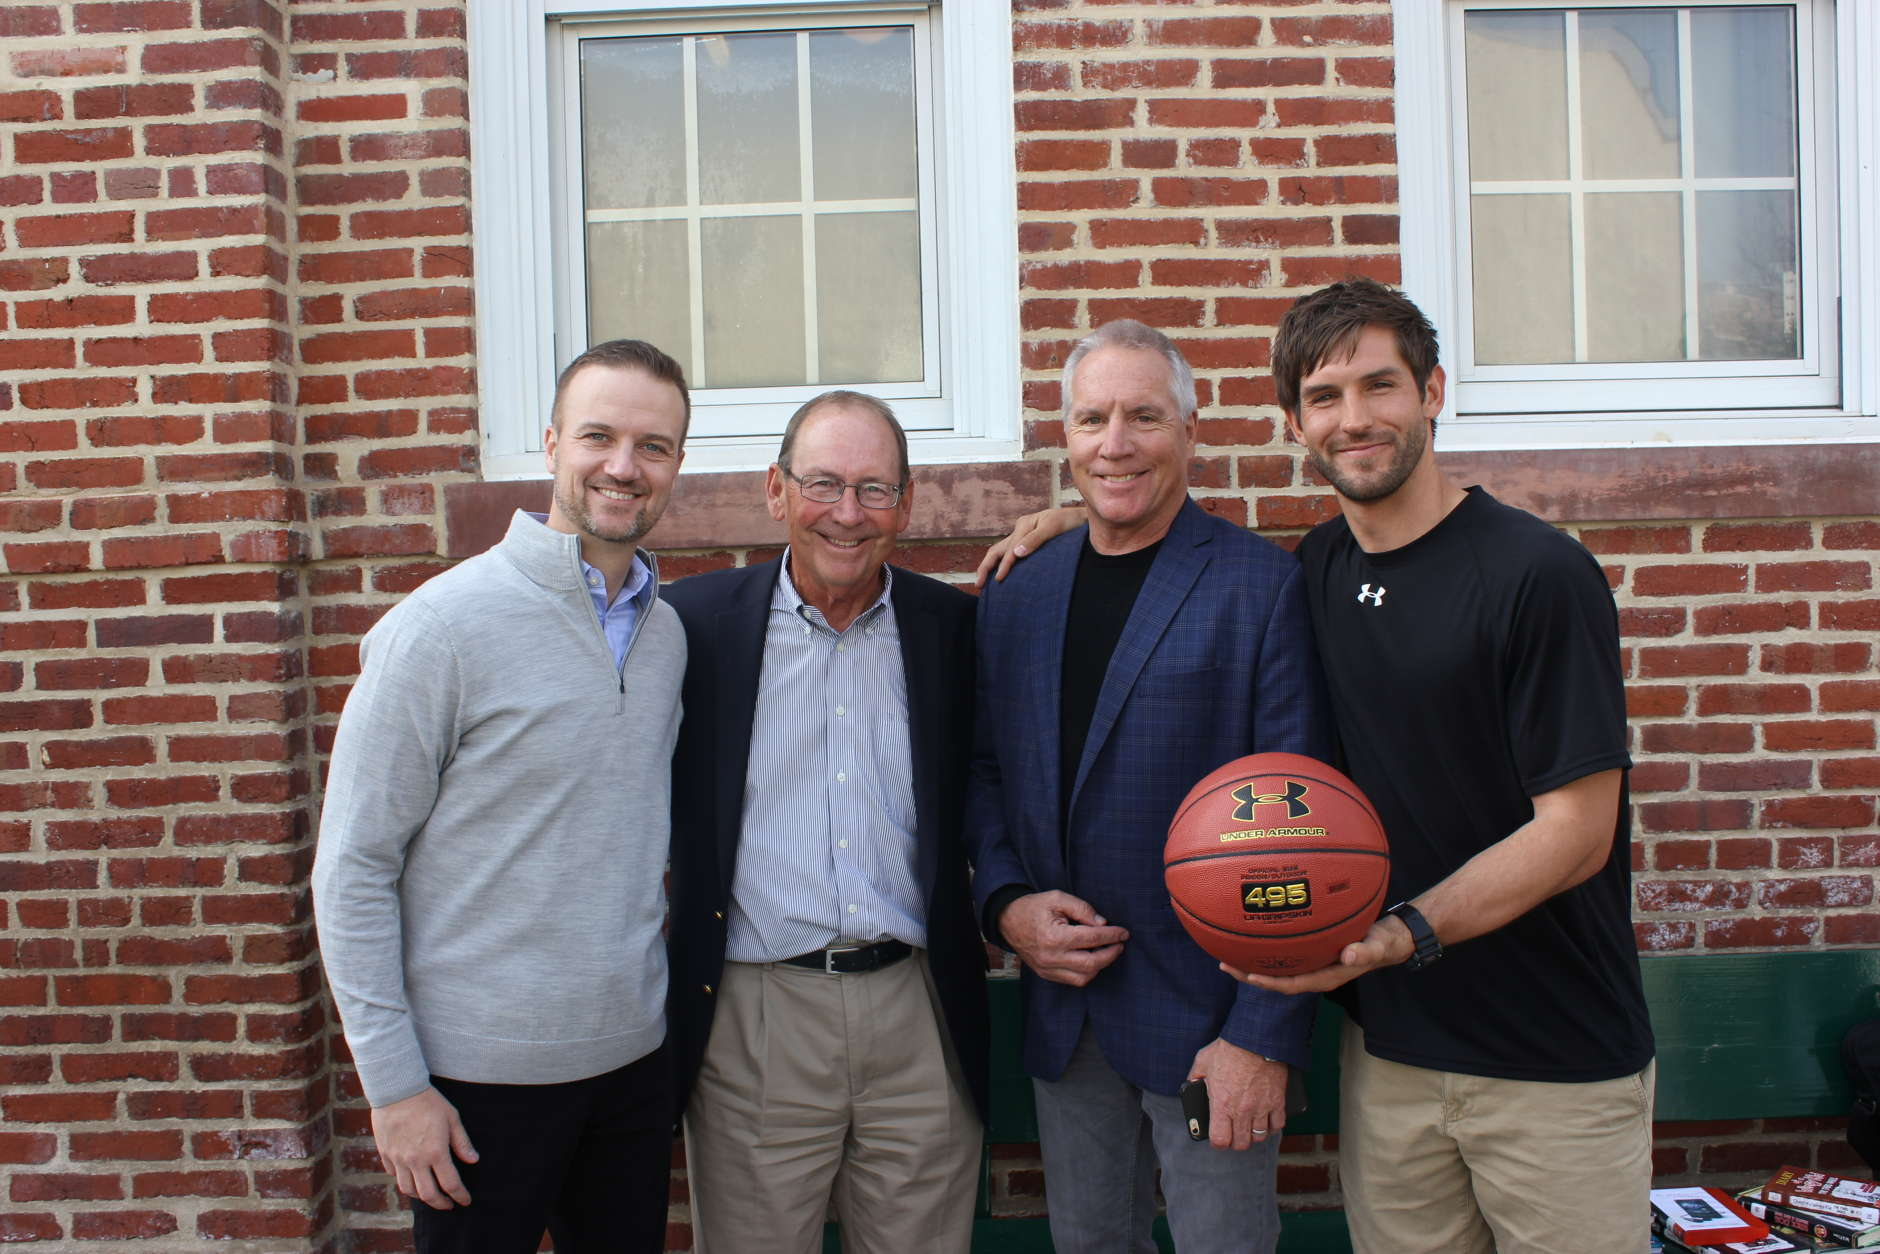 President of Under Armour North America  Jason La Rose; Founder/President of PHIT America  Jim Baugh; PHIT America Marketing Director Doug Gordon; and Ross Elementary PE teacher Jason Shegda. Shegda is holding an Under Armour basketball, which is the initial gift to the school. (Courtesy of Shari Gordon)